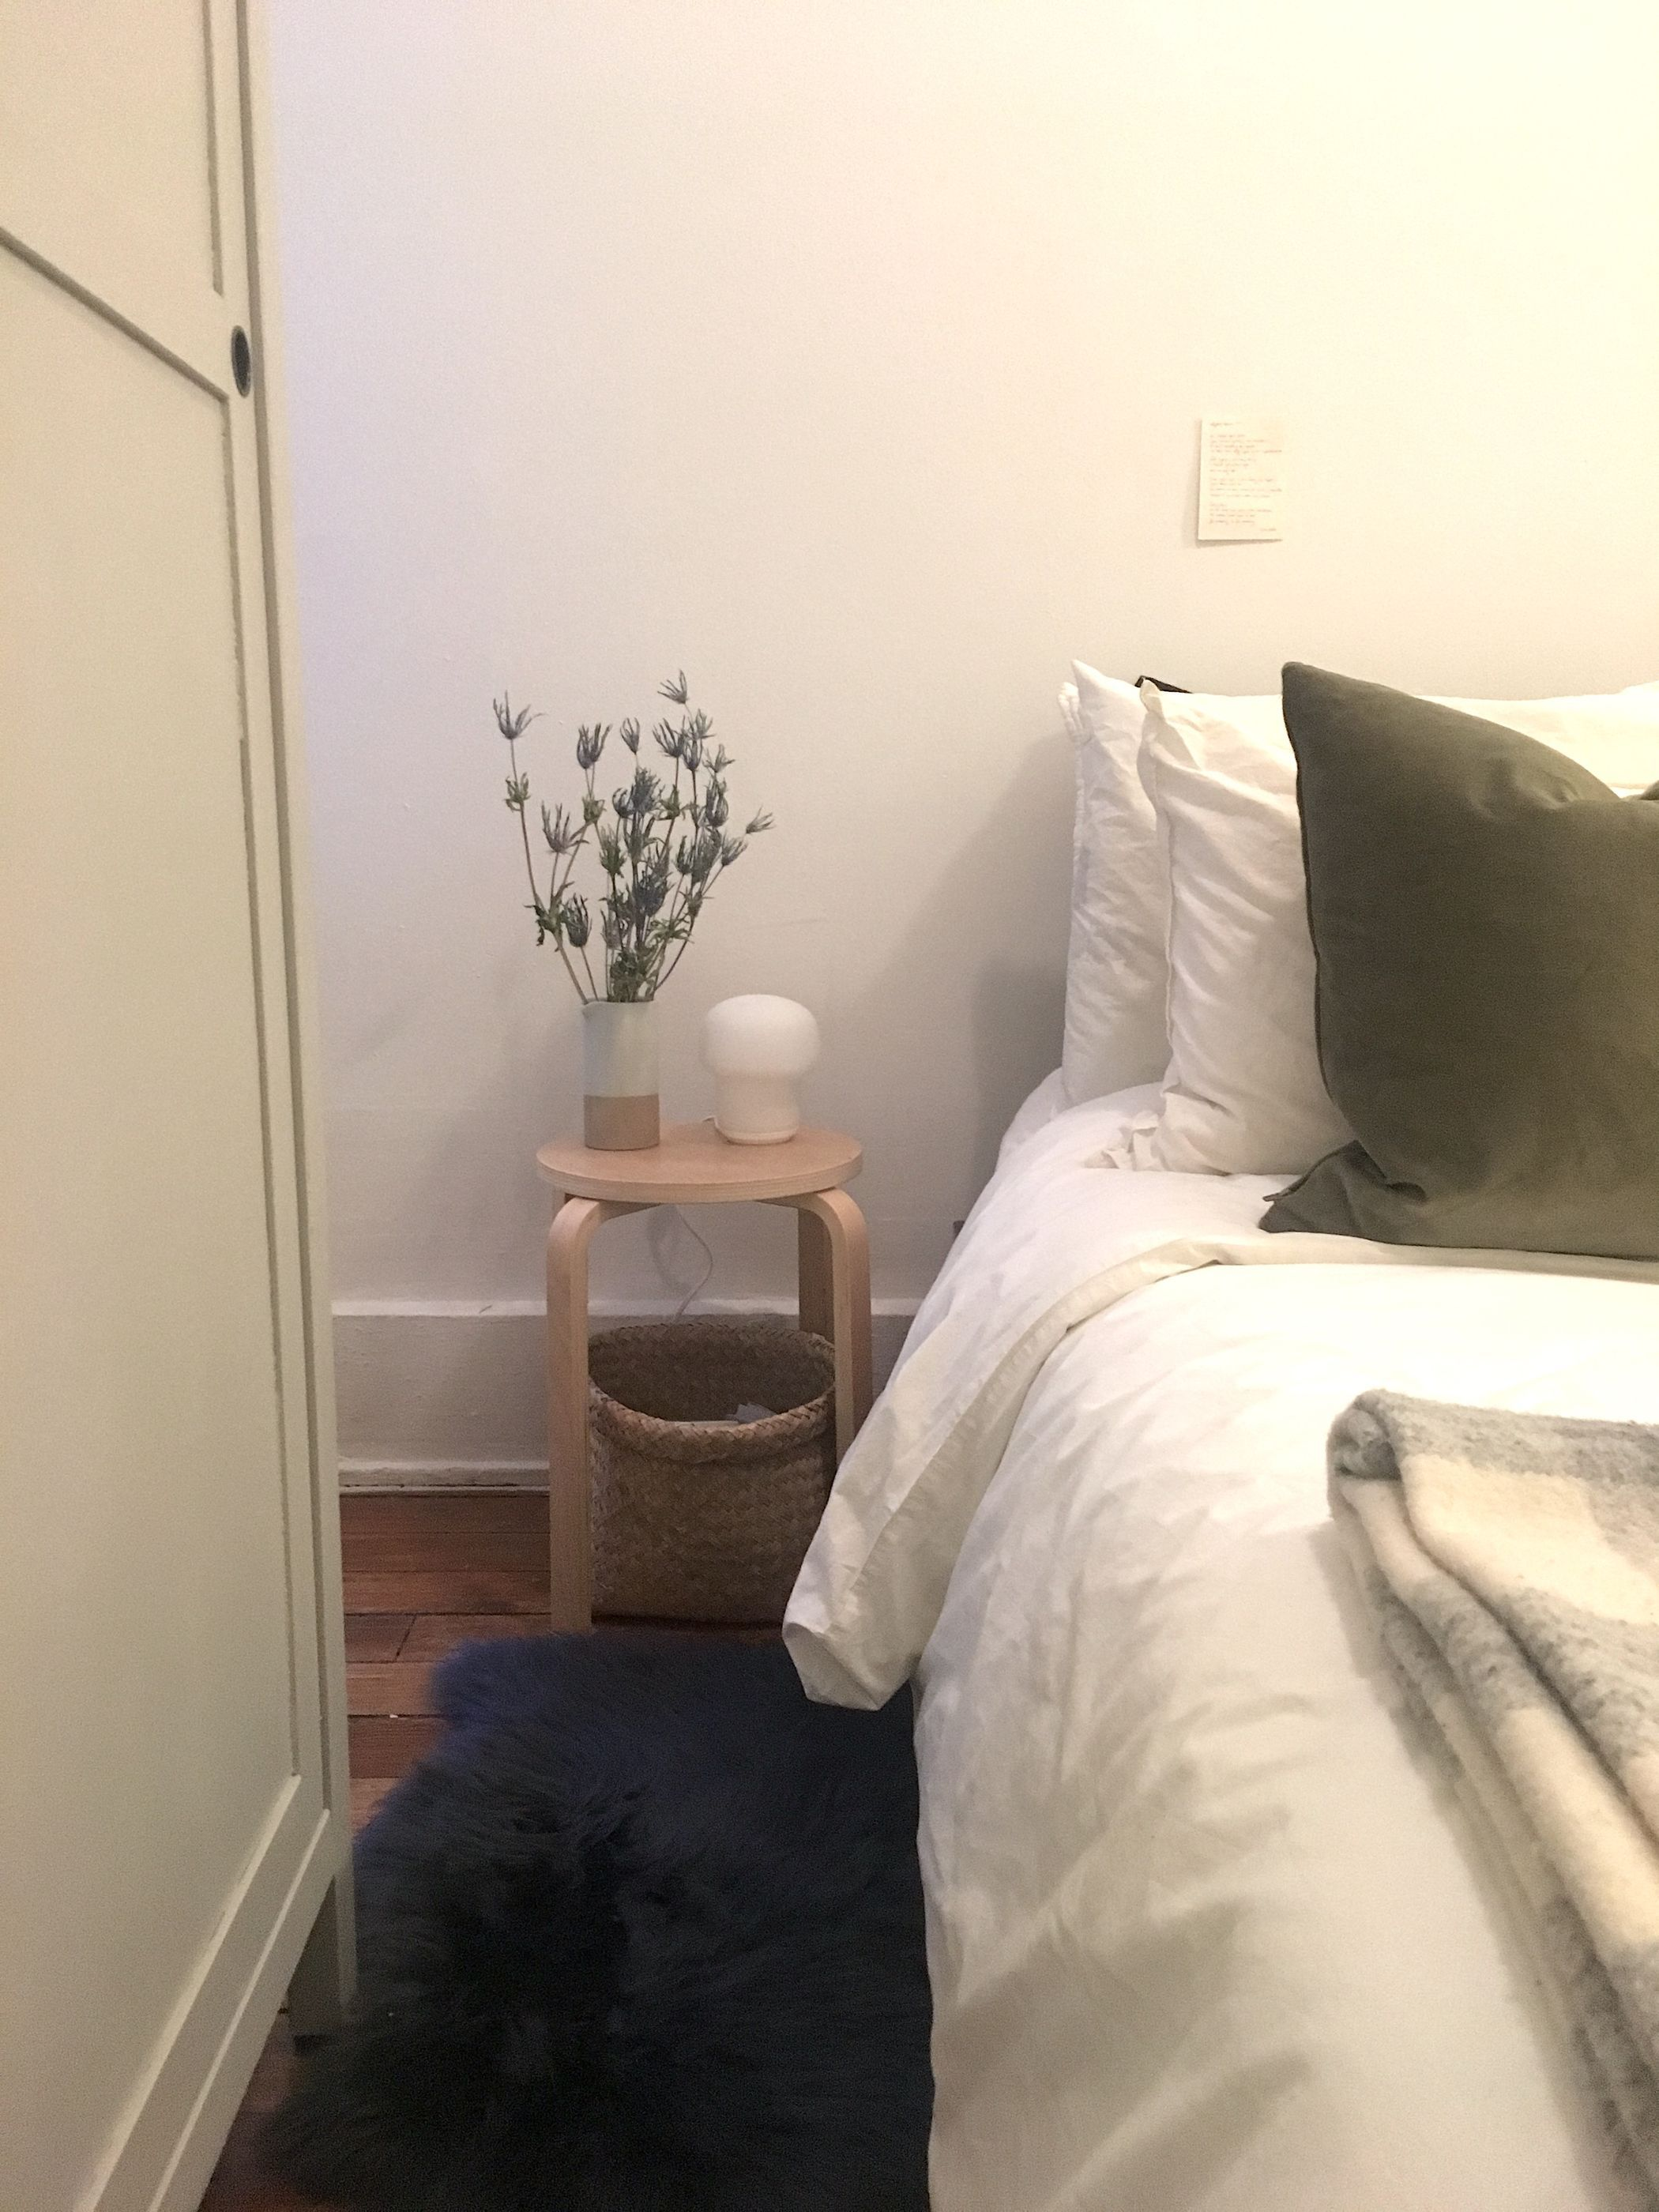 My Bedroom Needed a Refresh on a $100 Budget. IKEA Delivered.